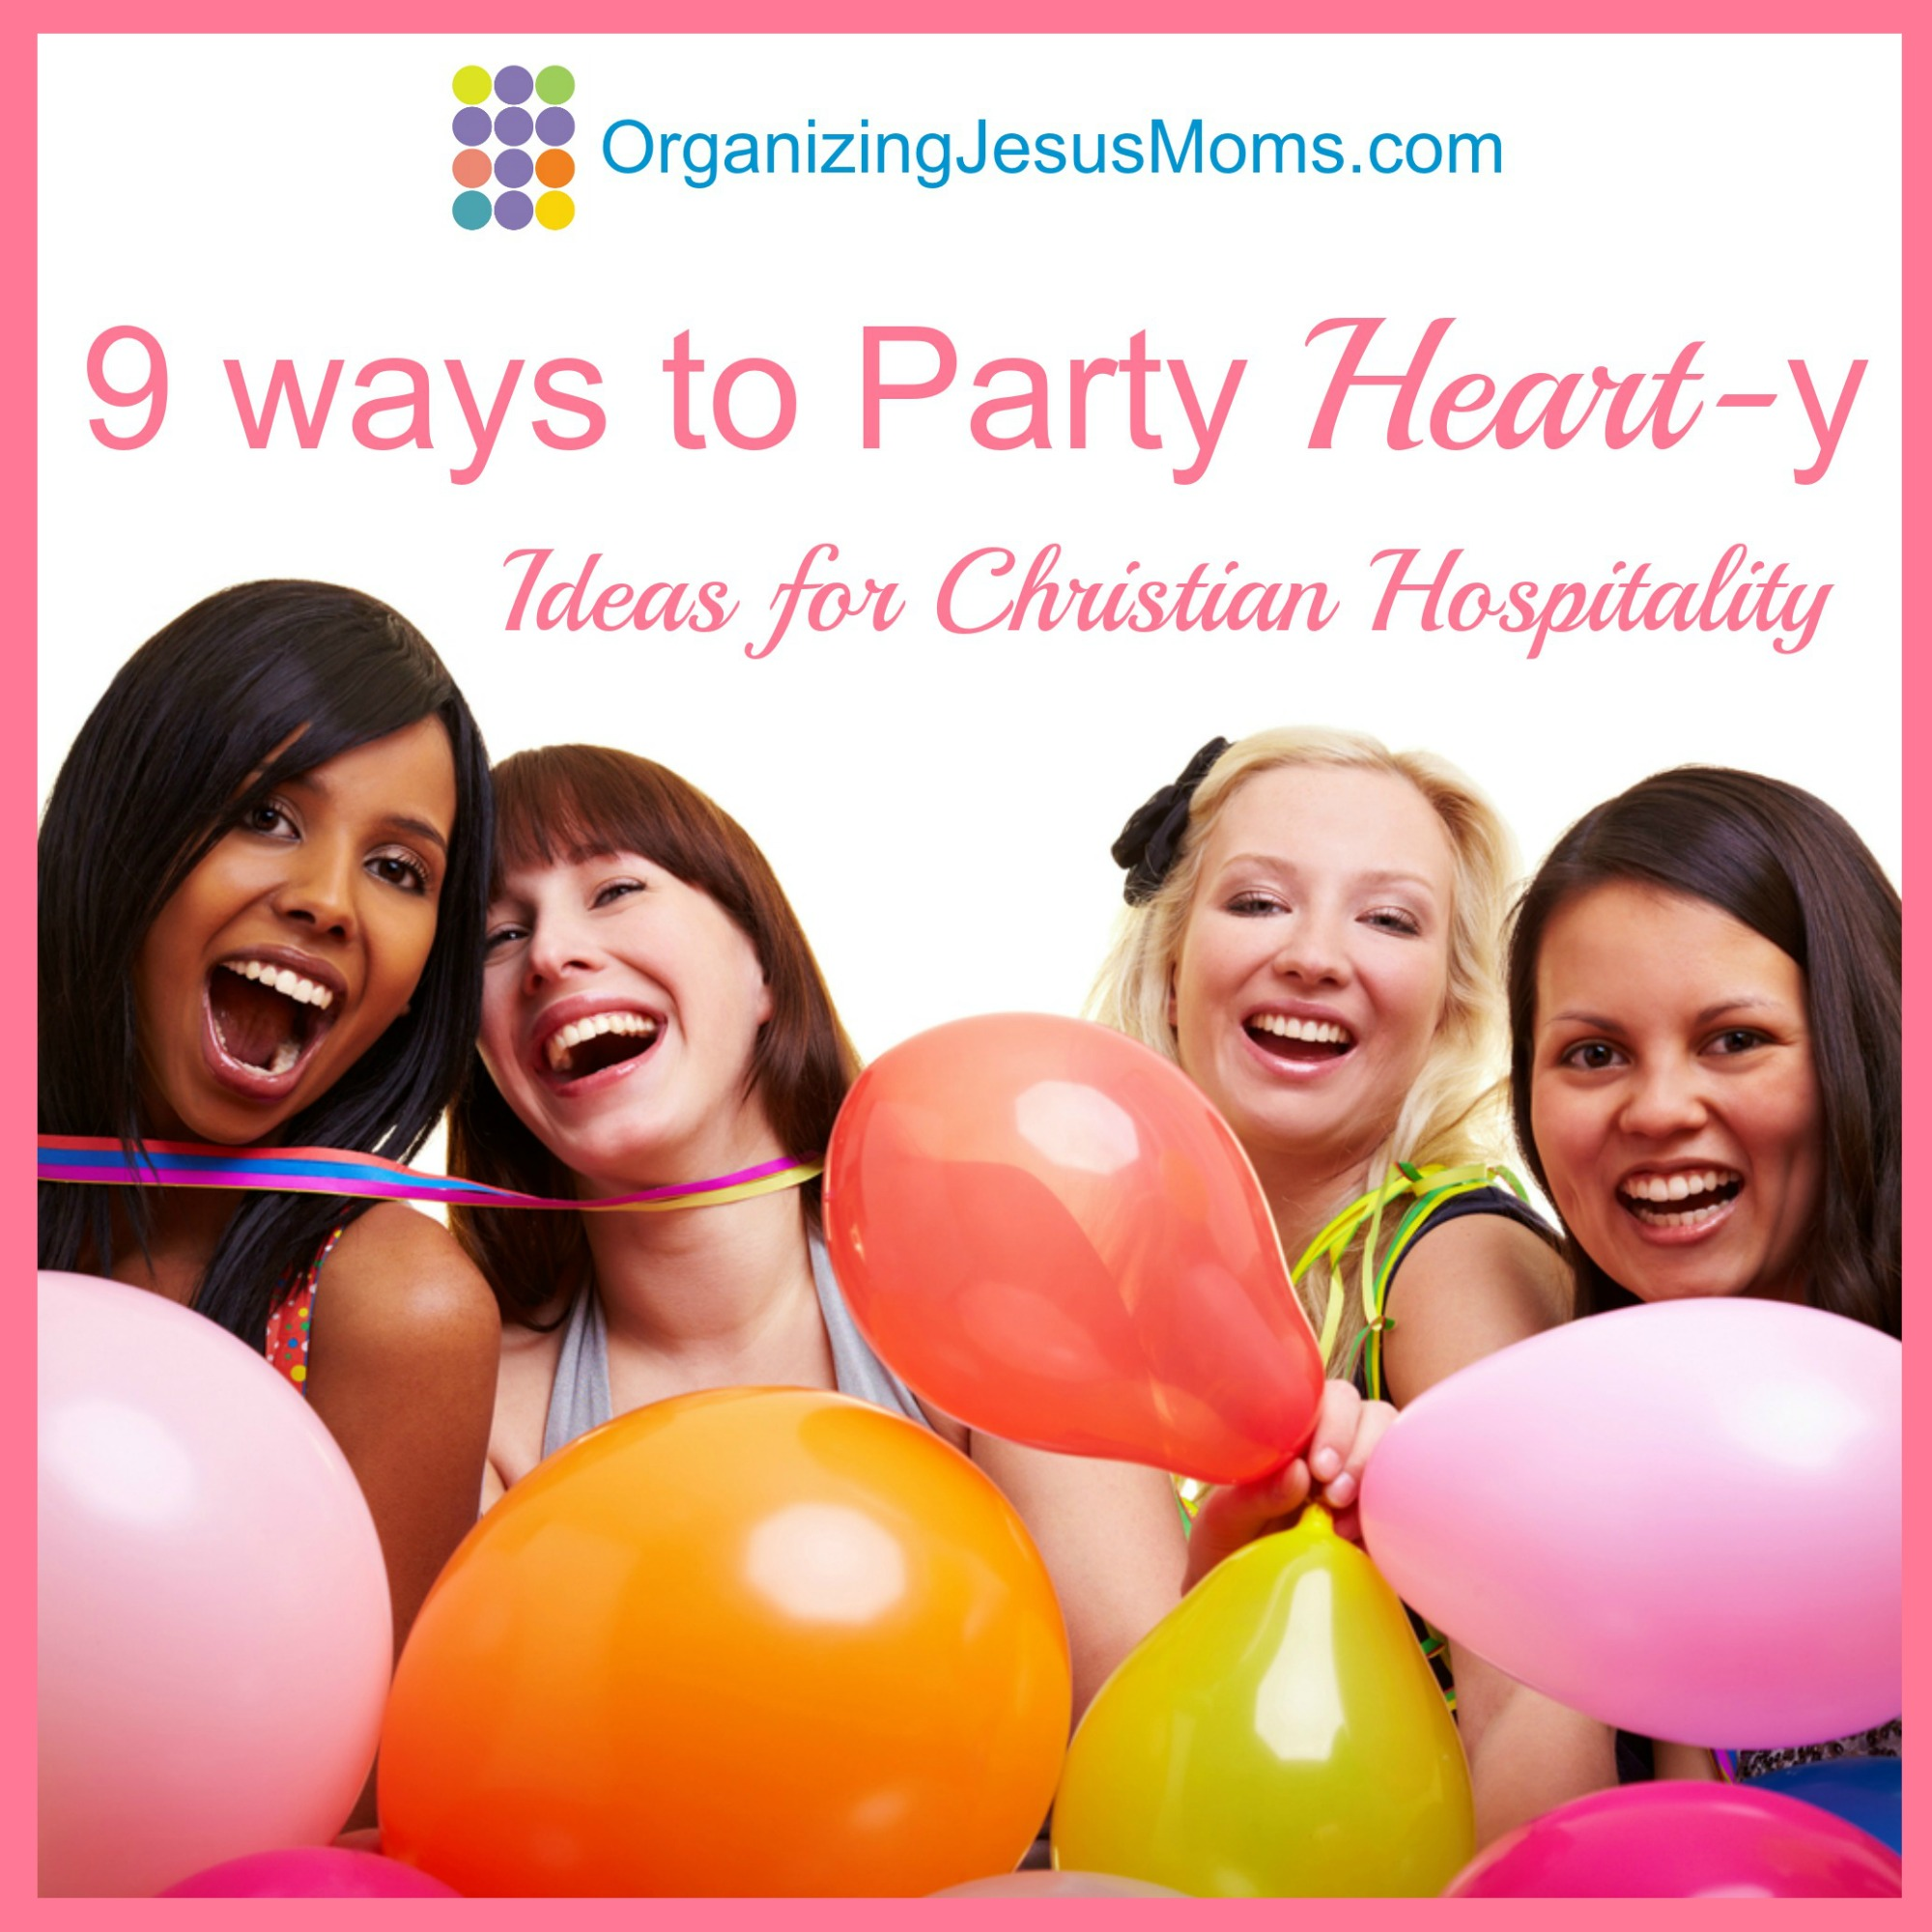 organizing-jesus-moms-party-hearty